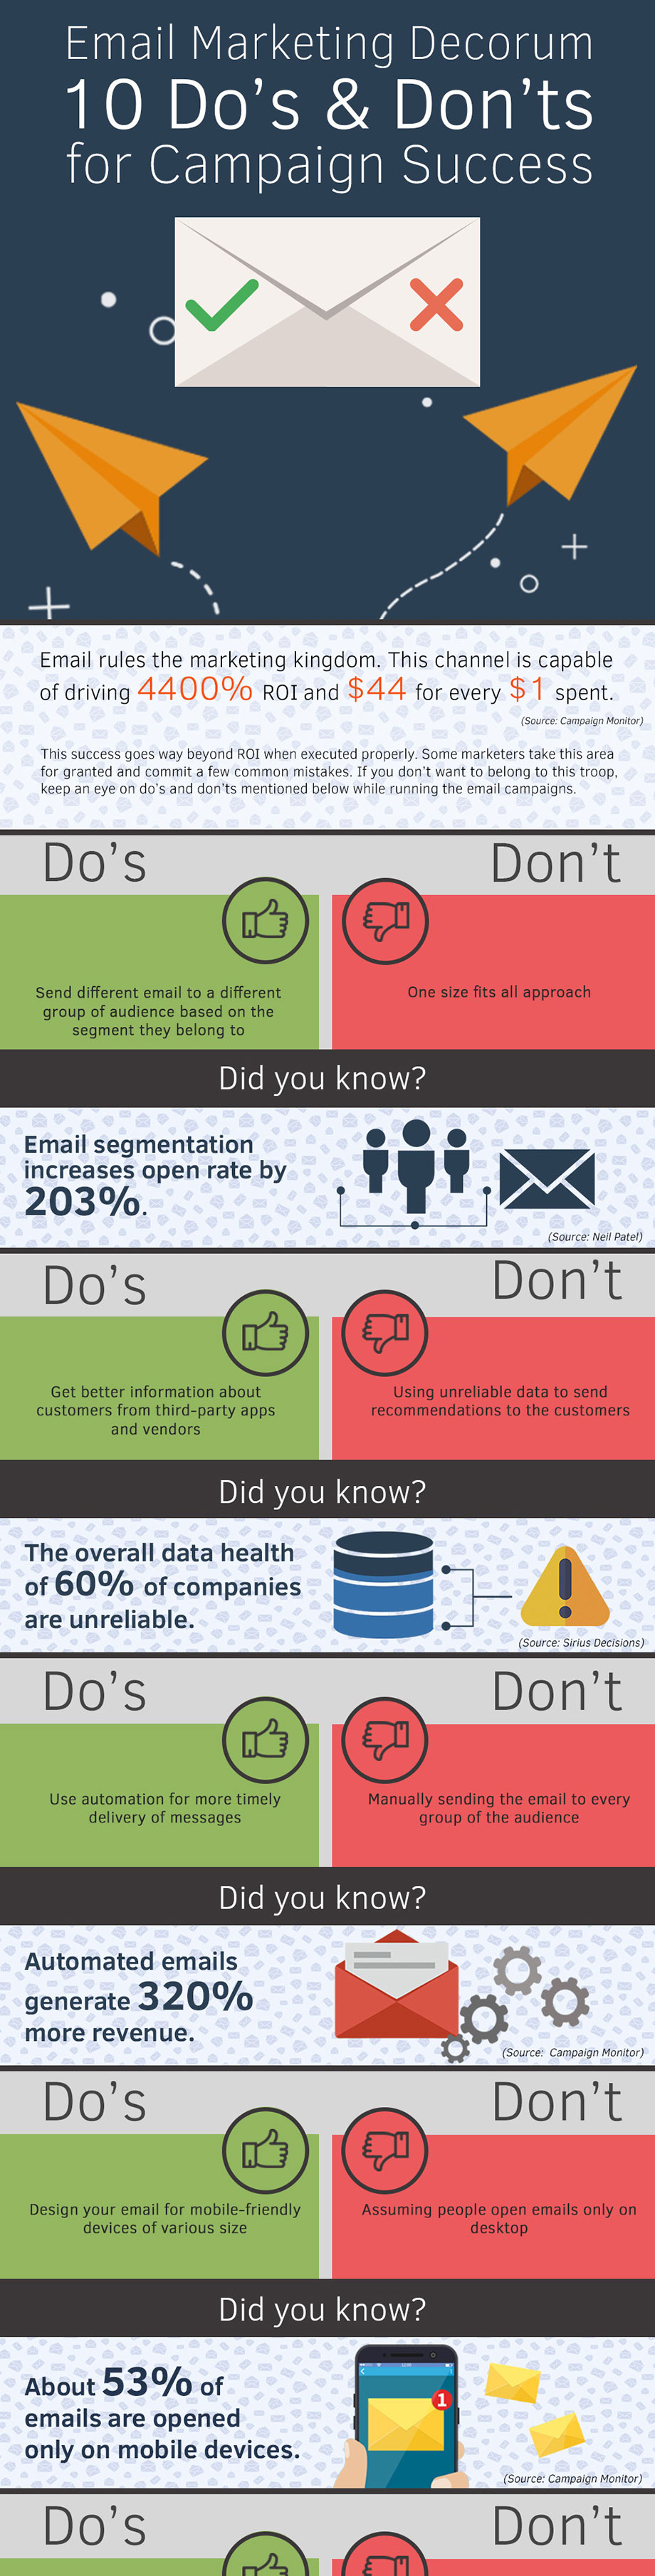 email-marketing-decorum-dos-donts-campaign-success-infographic-1